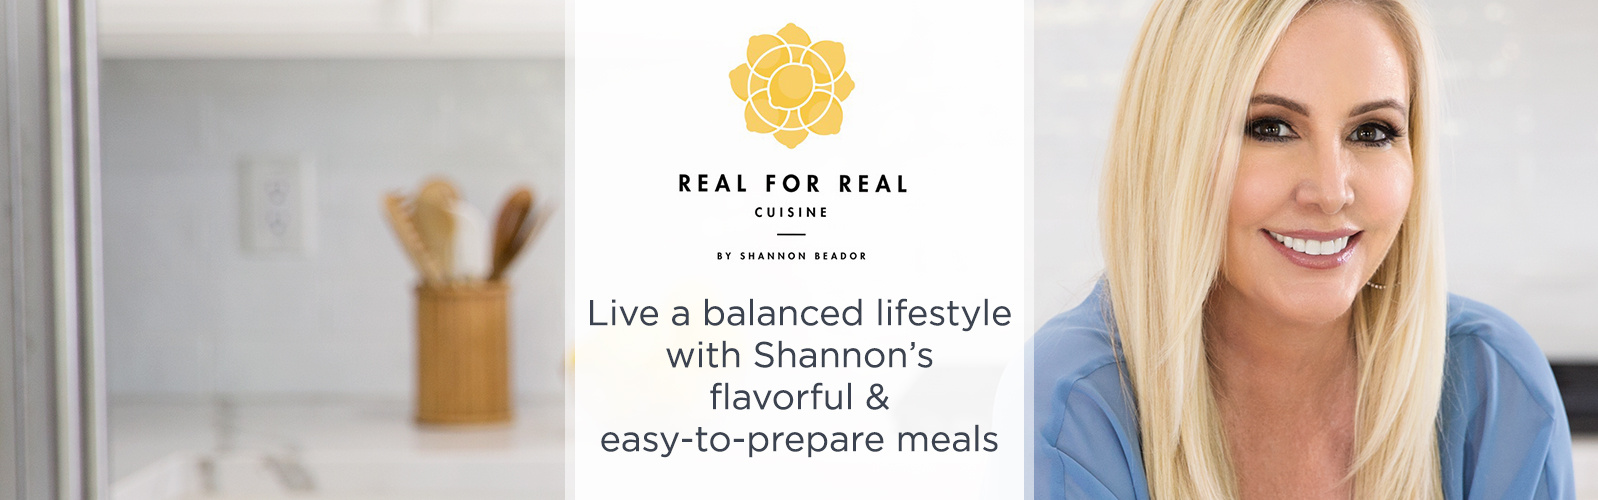 Real for Real Cuisine by Shannon Beador.  Live a balanced lifestyle with Shannon's flavorful & easy-to-prepare meals.